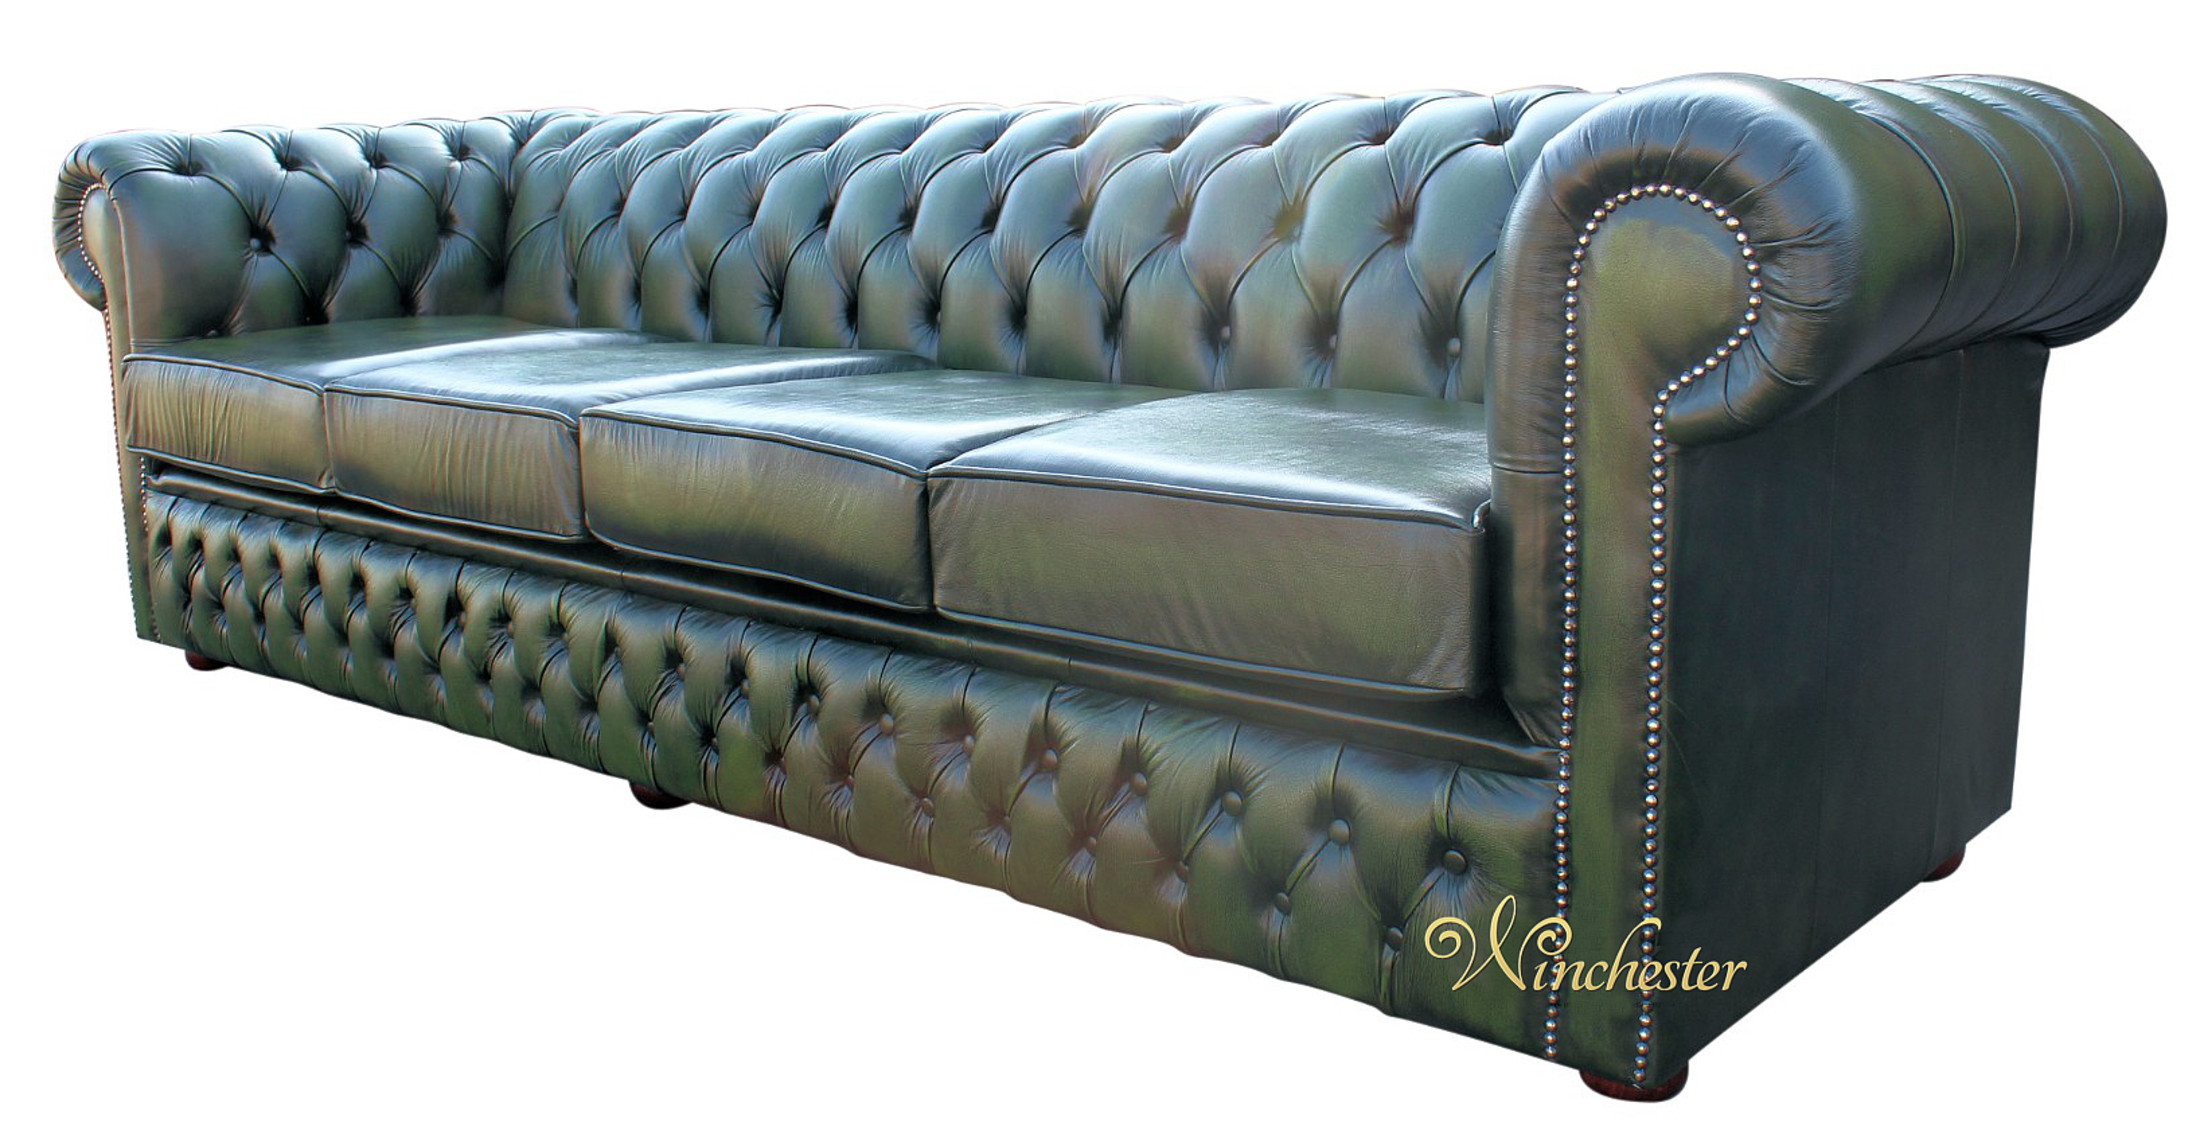 Chesterfield Winchester 4 Seater Leather Sofa Settee Antique  Green Leather Wc